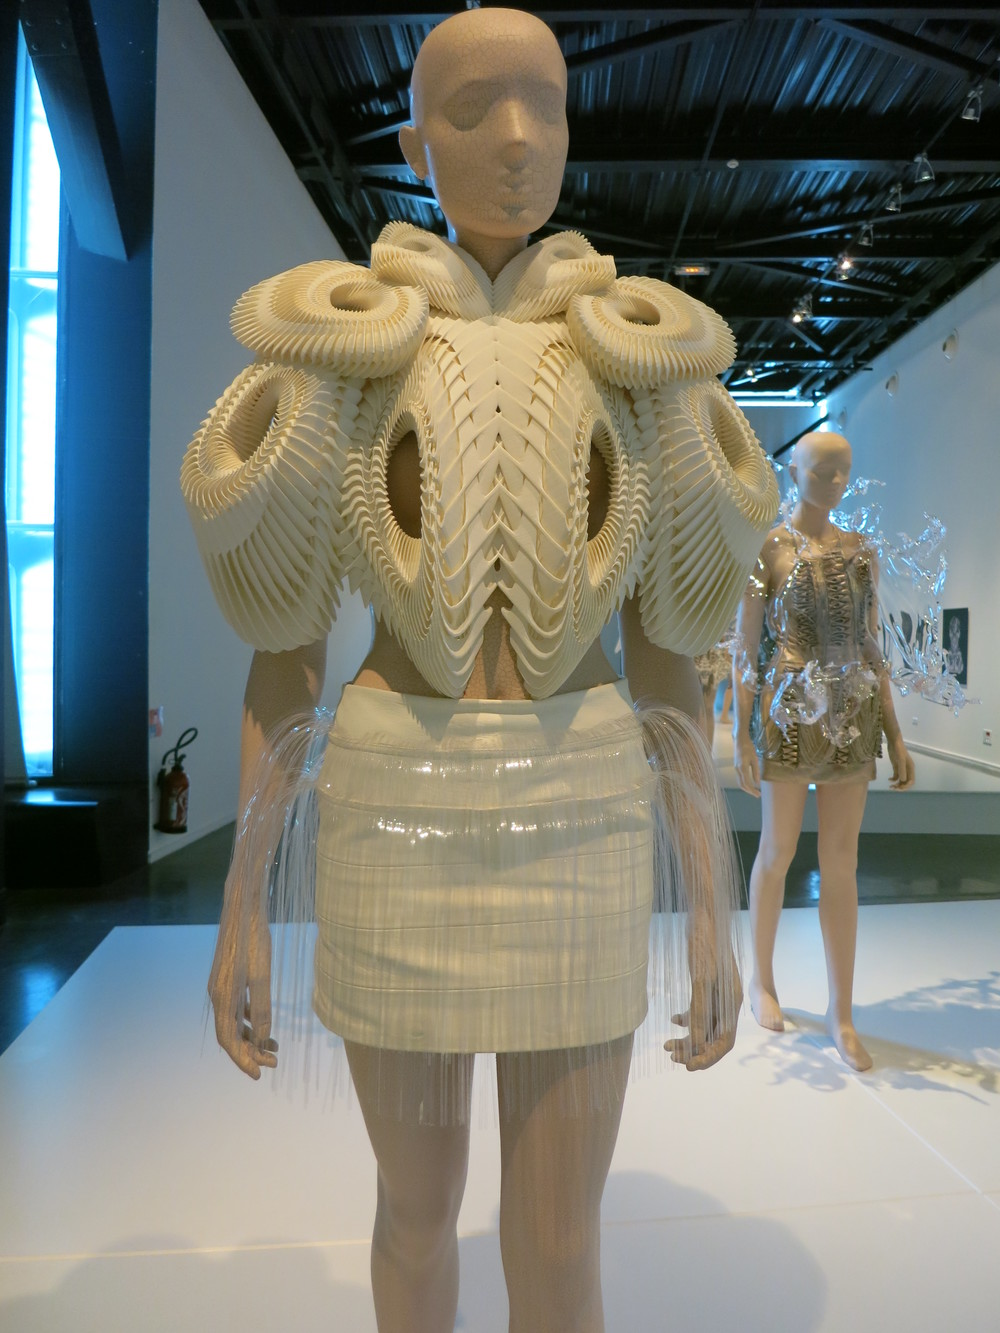 Iris van Herpen exhibition at the Calais Lace Museum 2013 - 'CRYSTALLIZATION' 2010